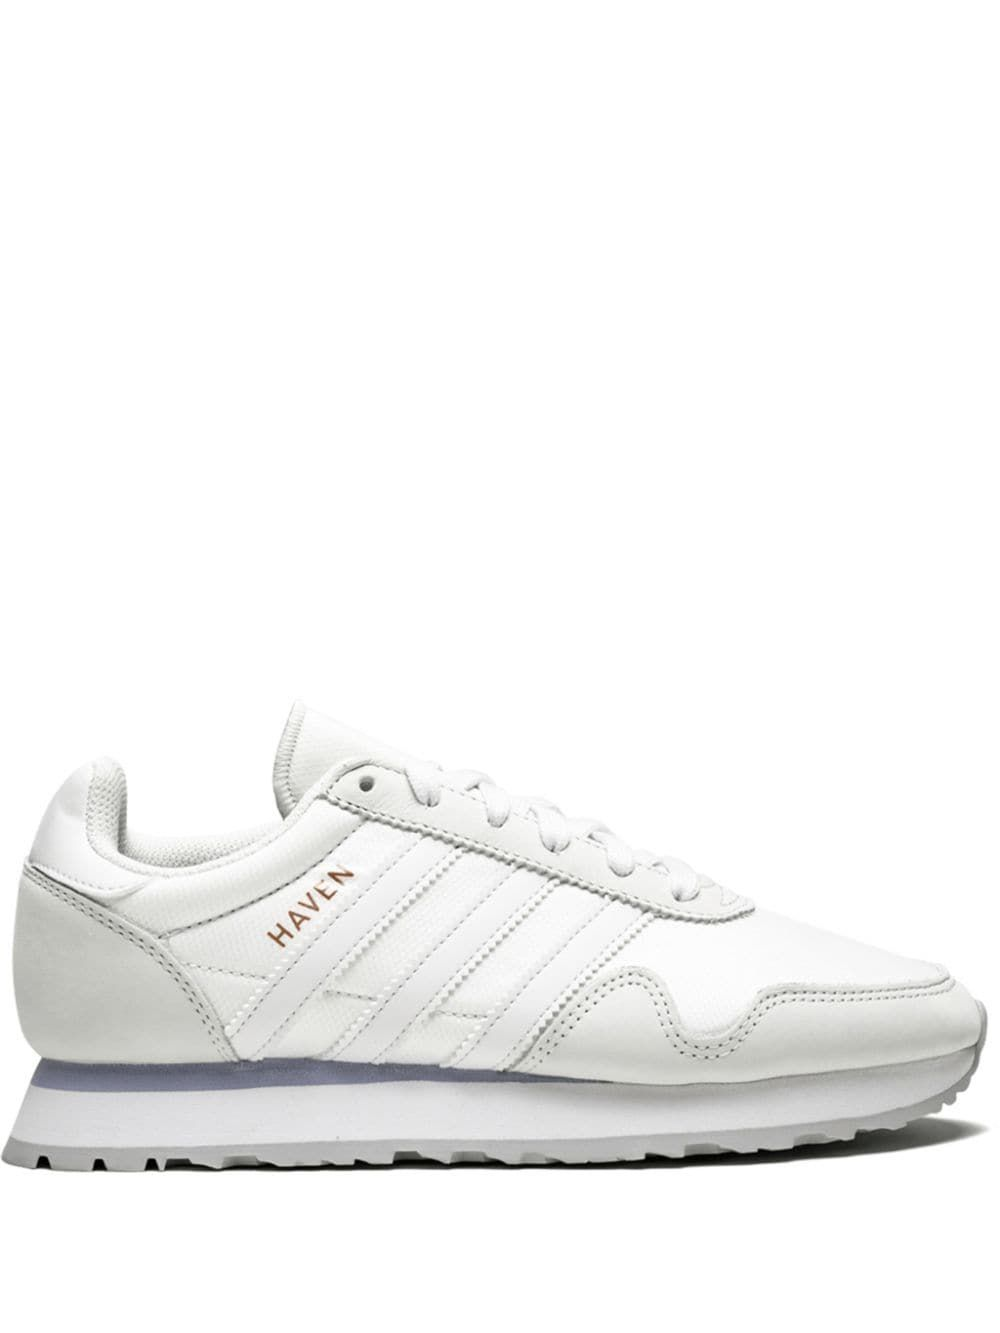 Adidas Haven W sneakers - White | Sneakers, Adidas, Shoes ...